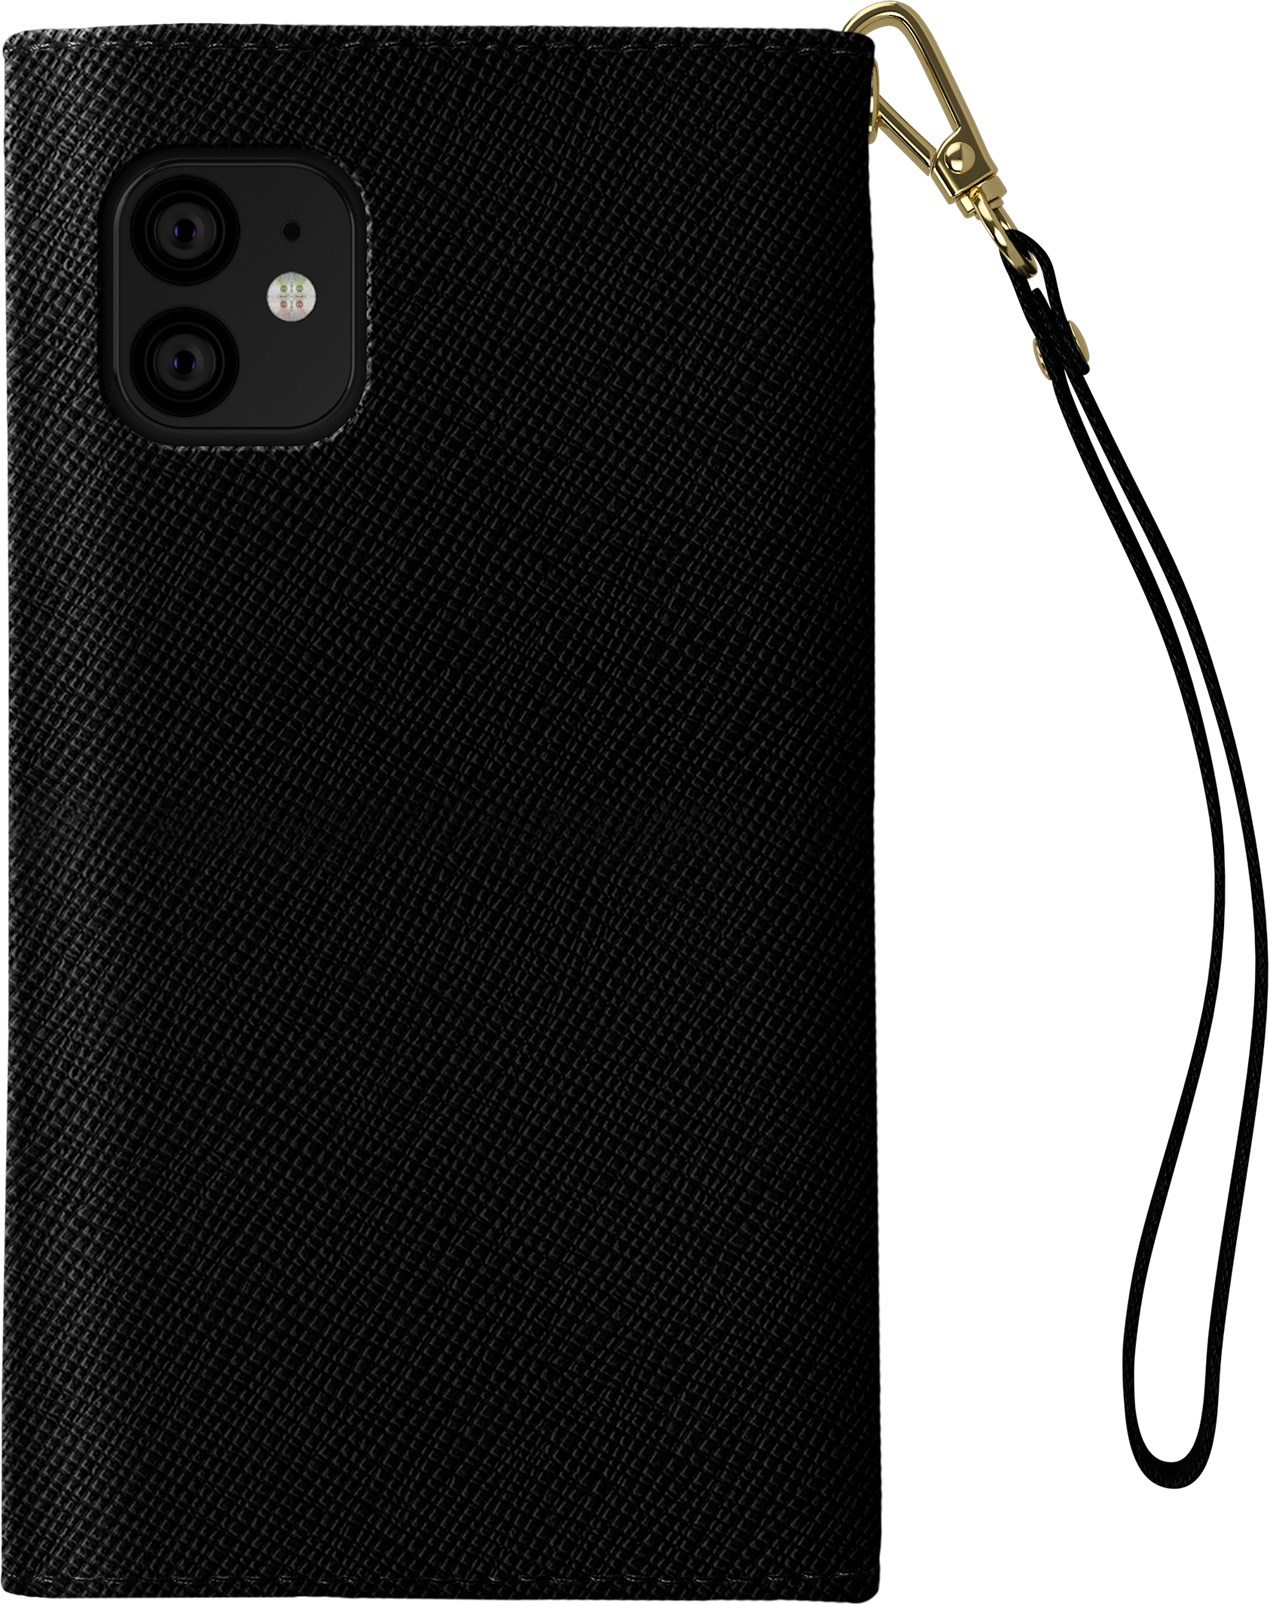 iDeal of Sweden Ideal Mayfair Clutch Iphone 11 Black